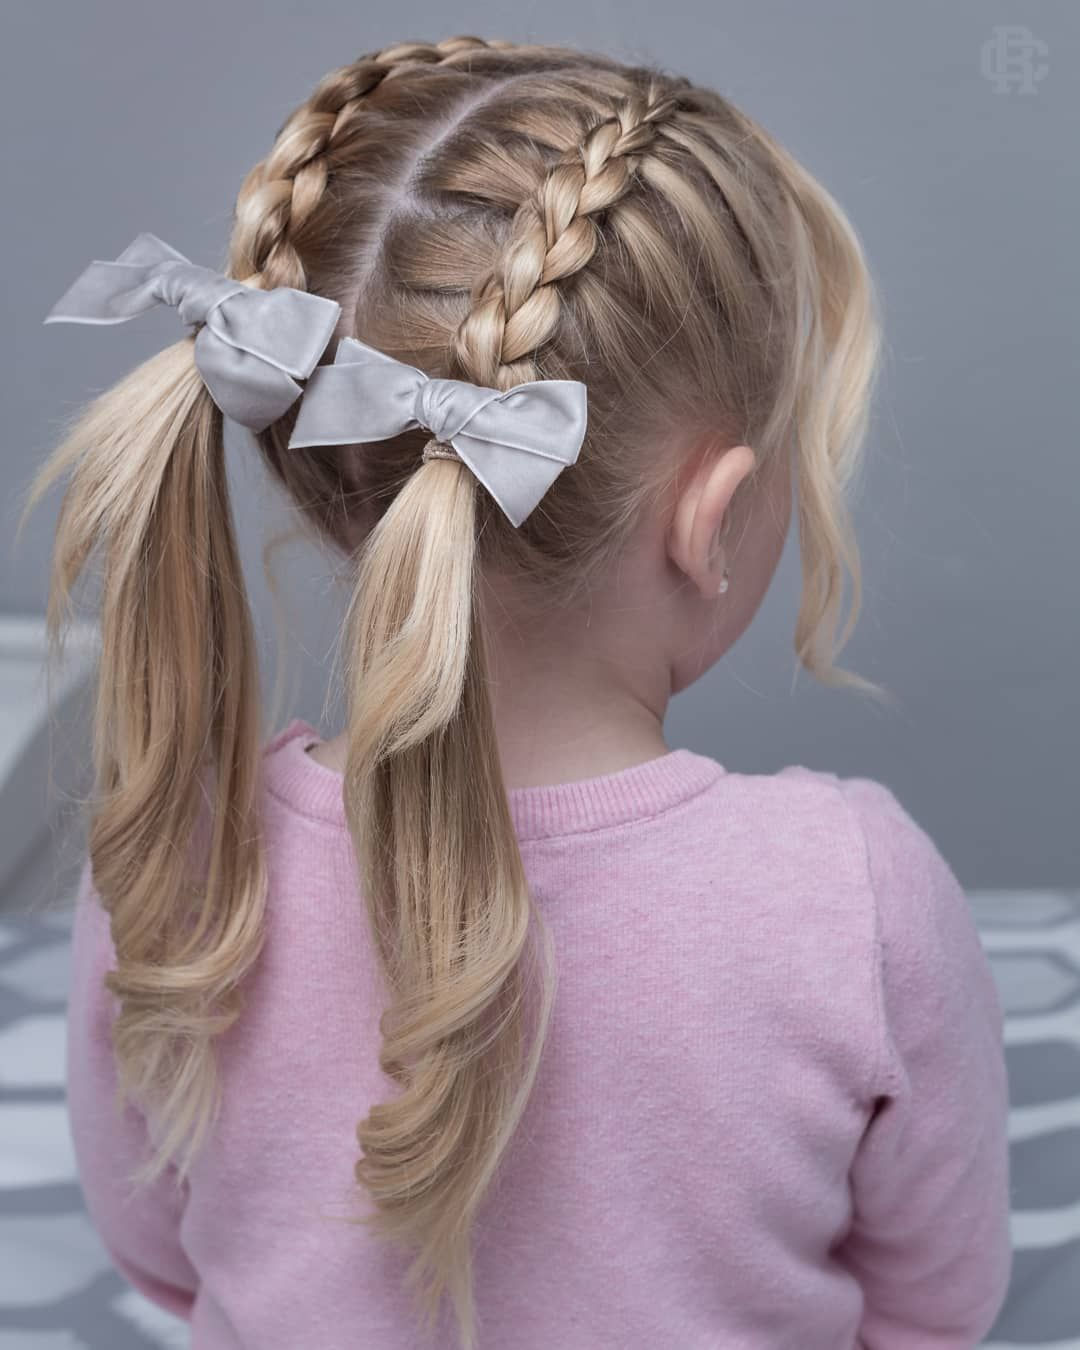 160 Braids Hairstyle Ideas for Little Kids 2019 #girlhairstyles